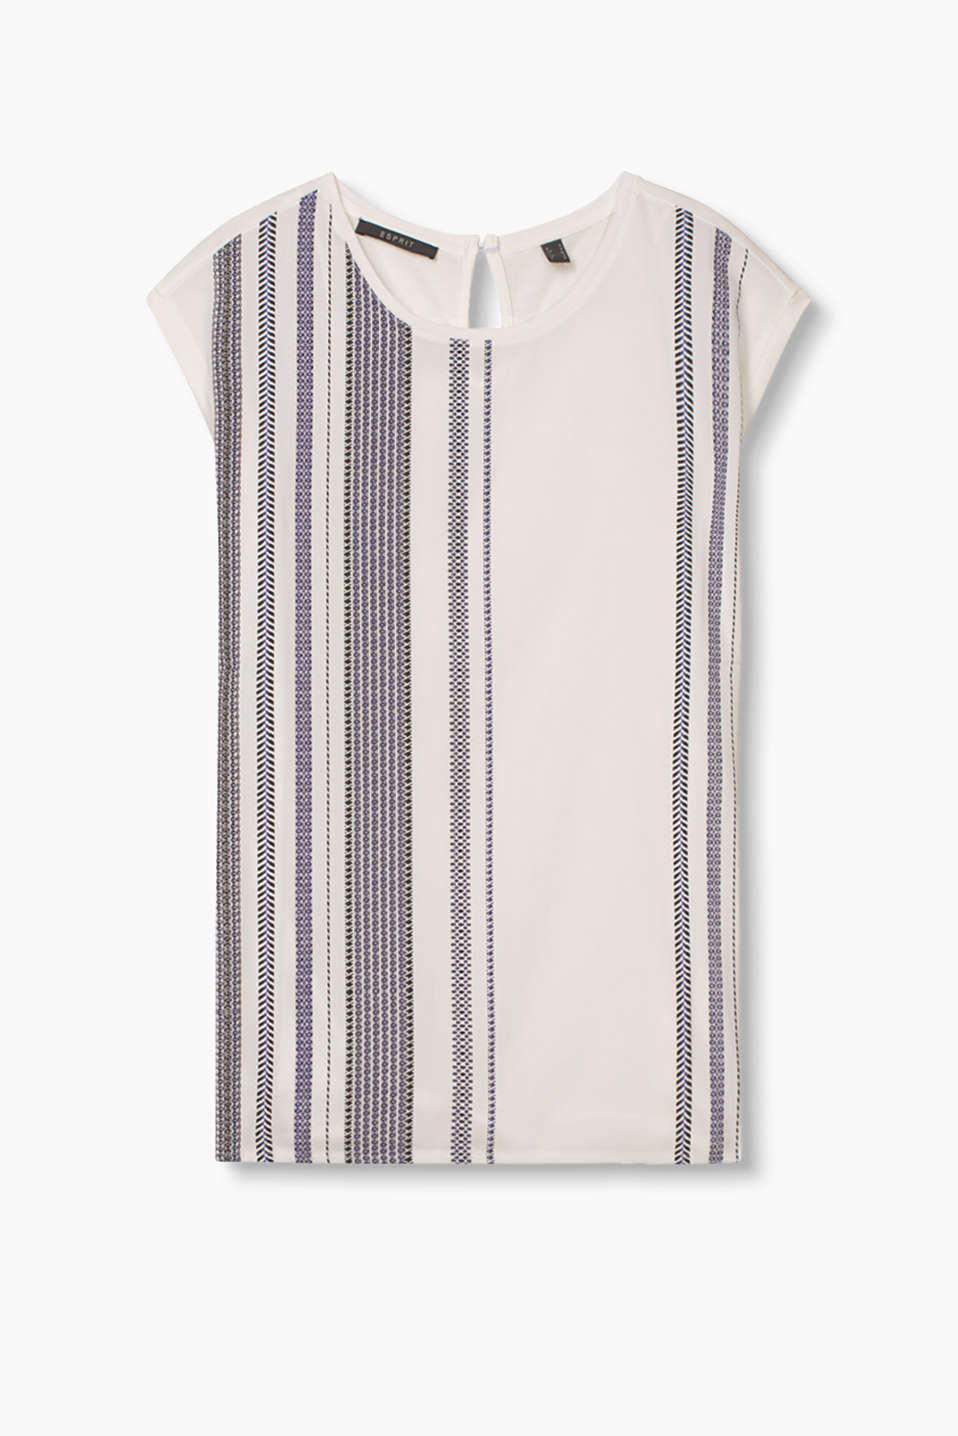 with an innovative striped print